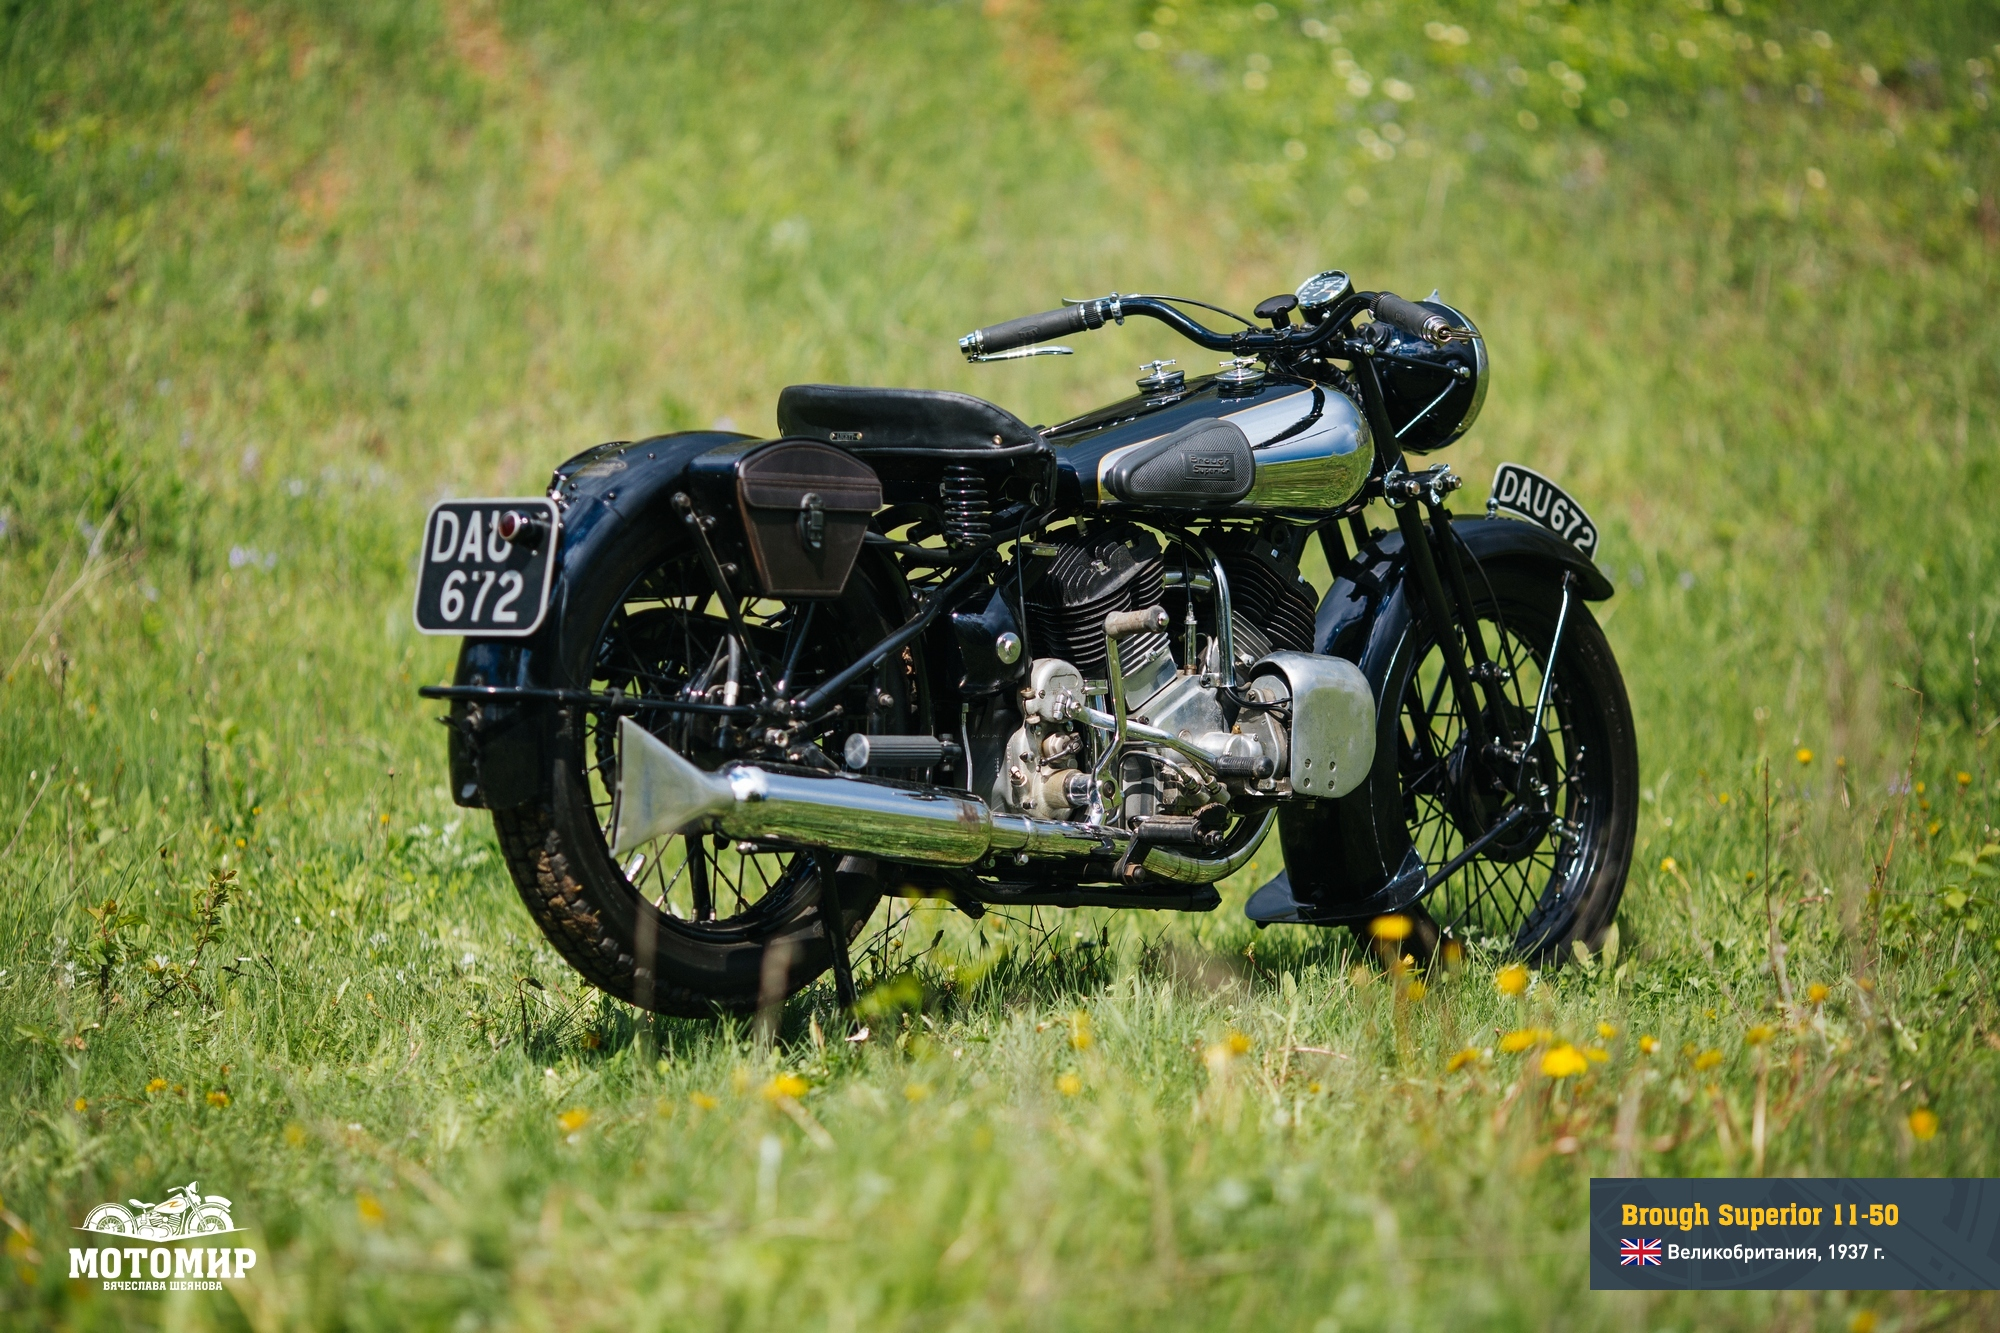 brough-superior-11-50-201509-web-04